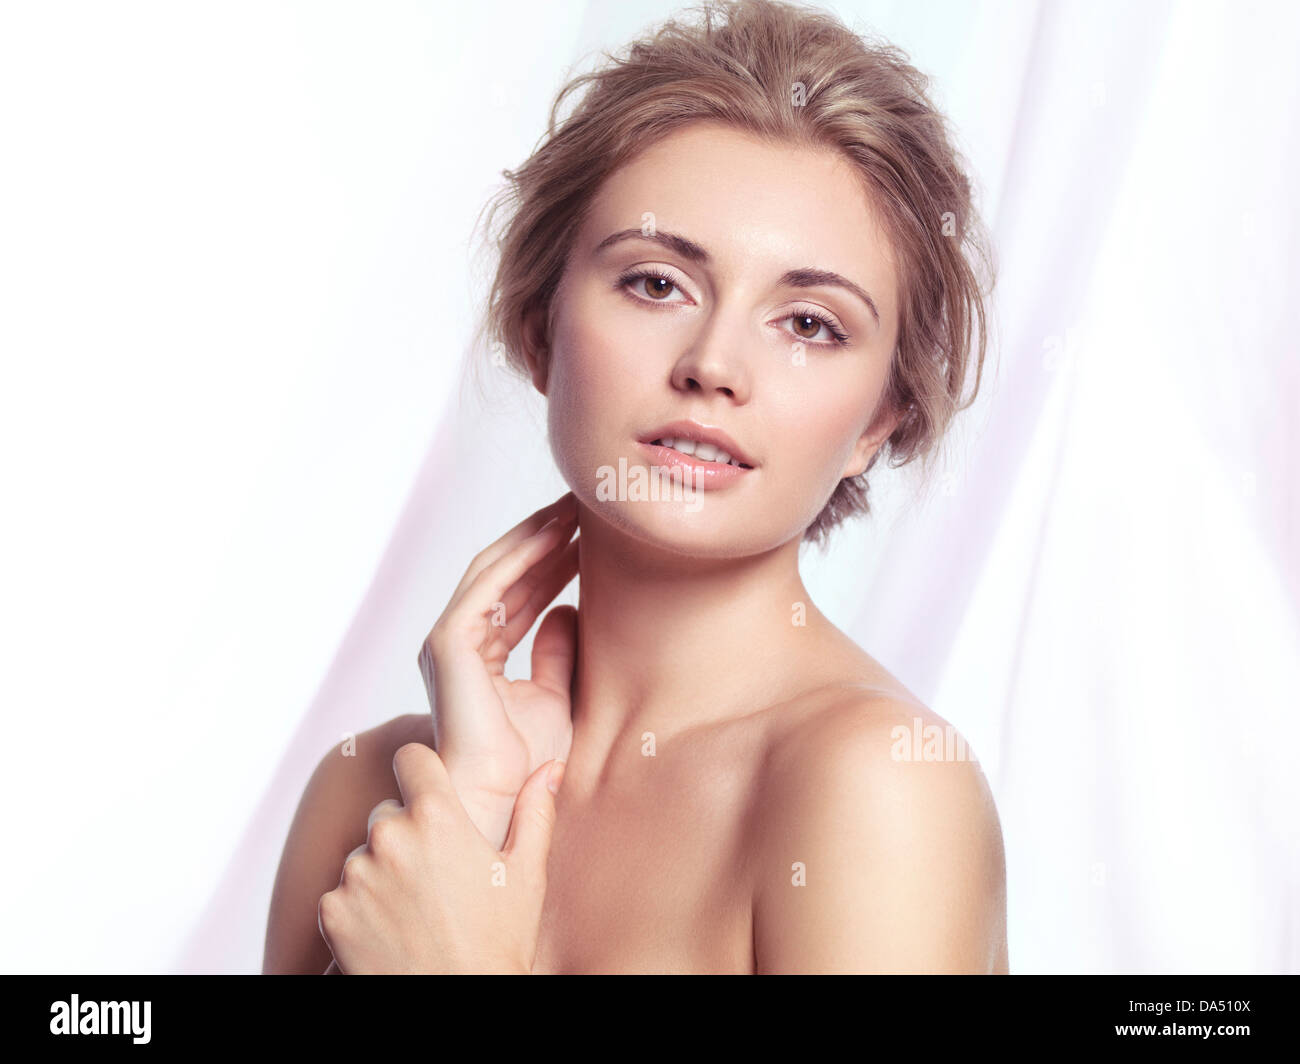 Beauty portrait of a young woman relaxed face with natural clean makeup and contemporary hairstyle over light pink - Stock Image